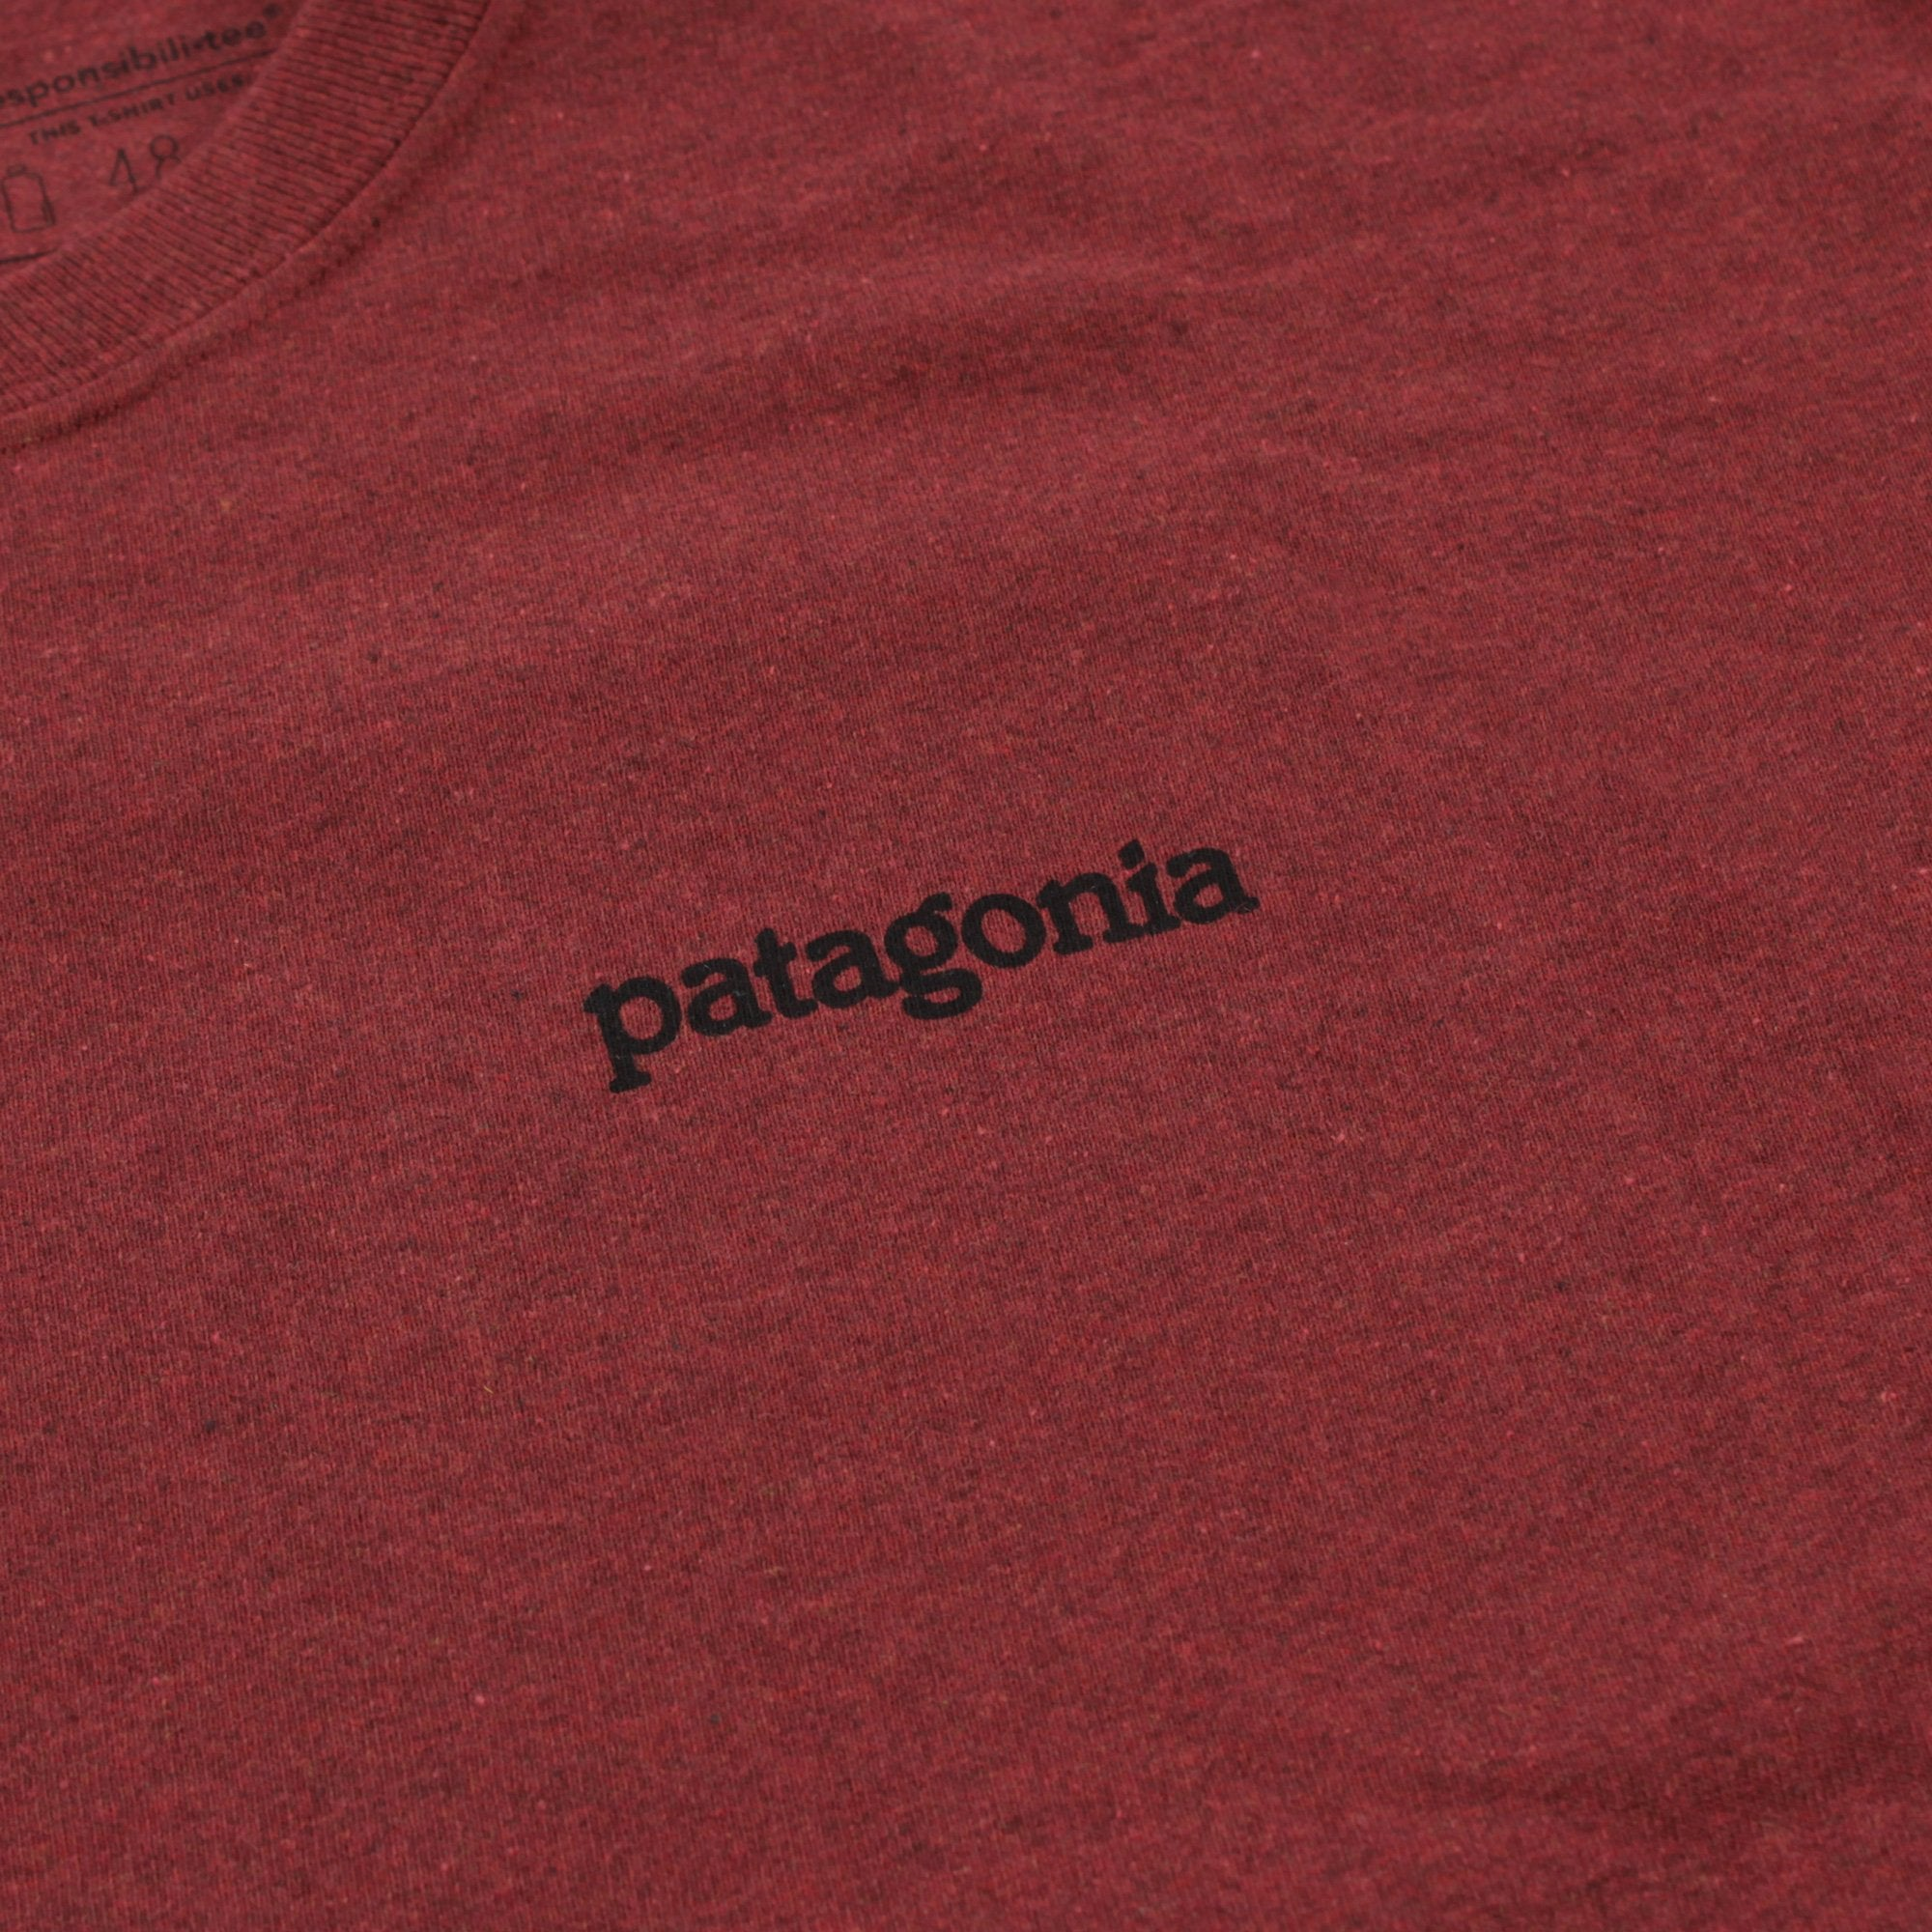 Patagonia Fitz Roy Horizons Tee Product Photo #4